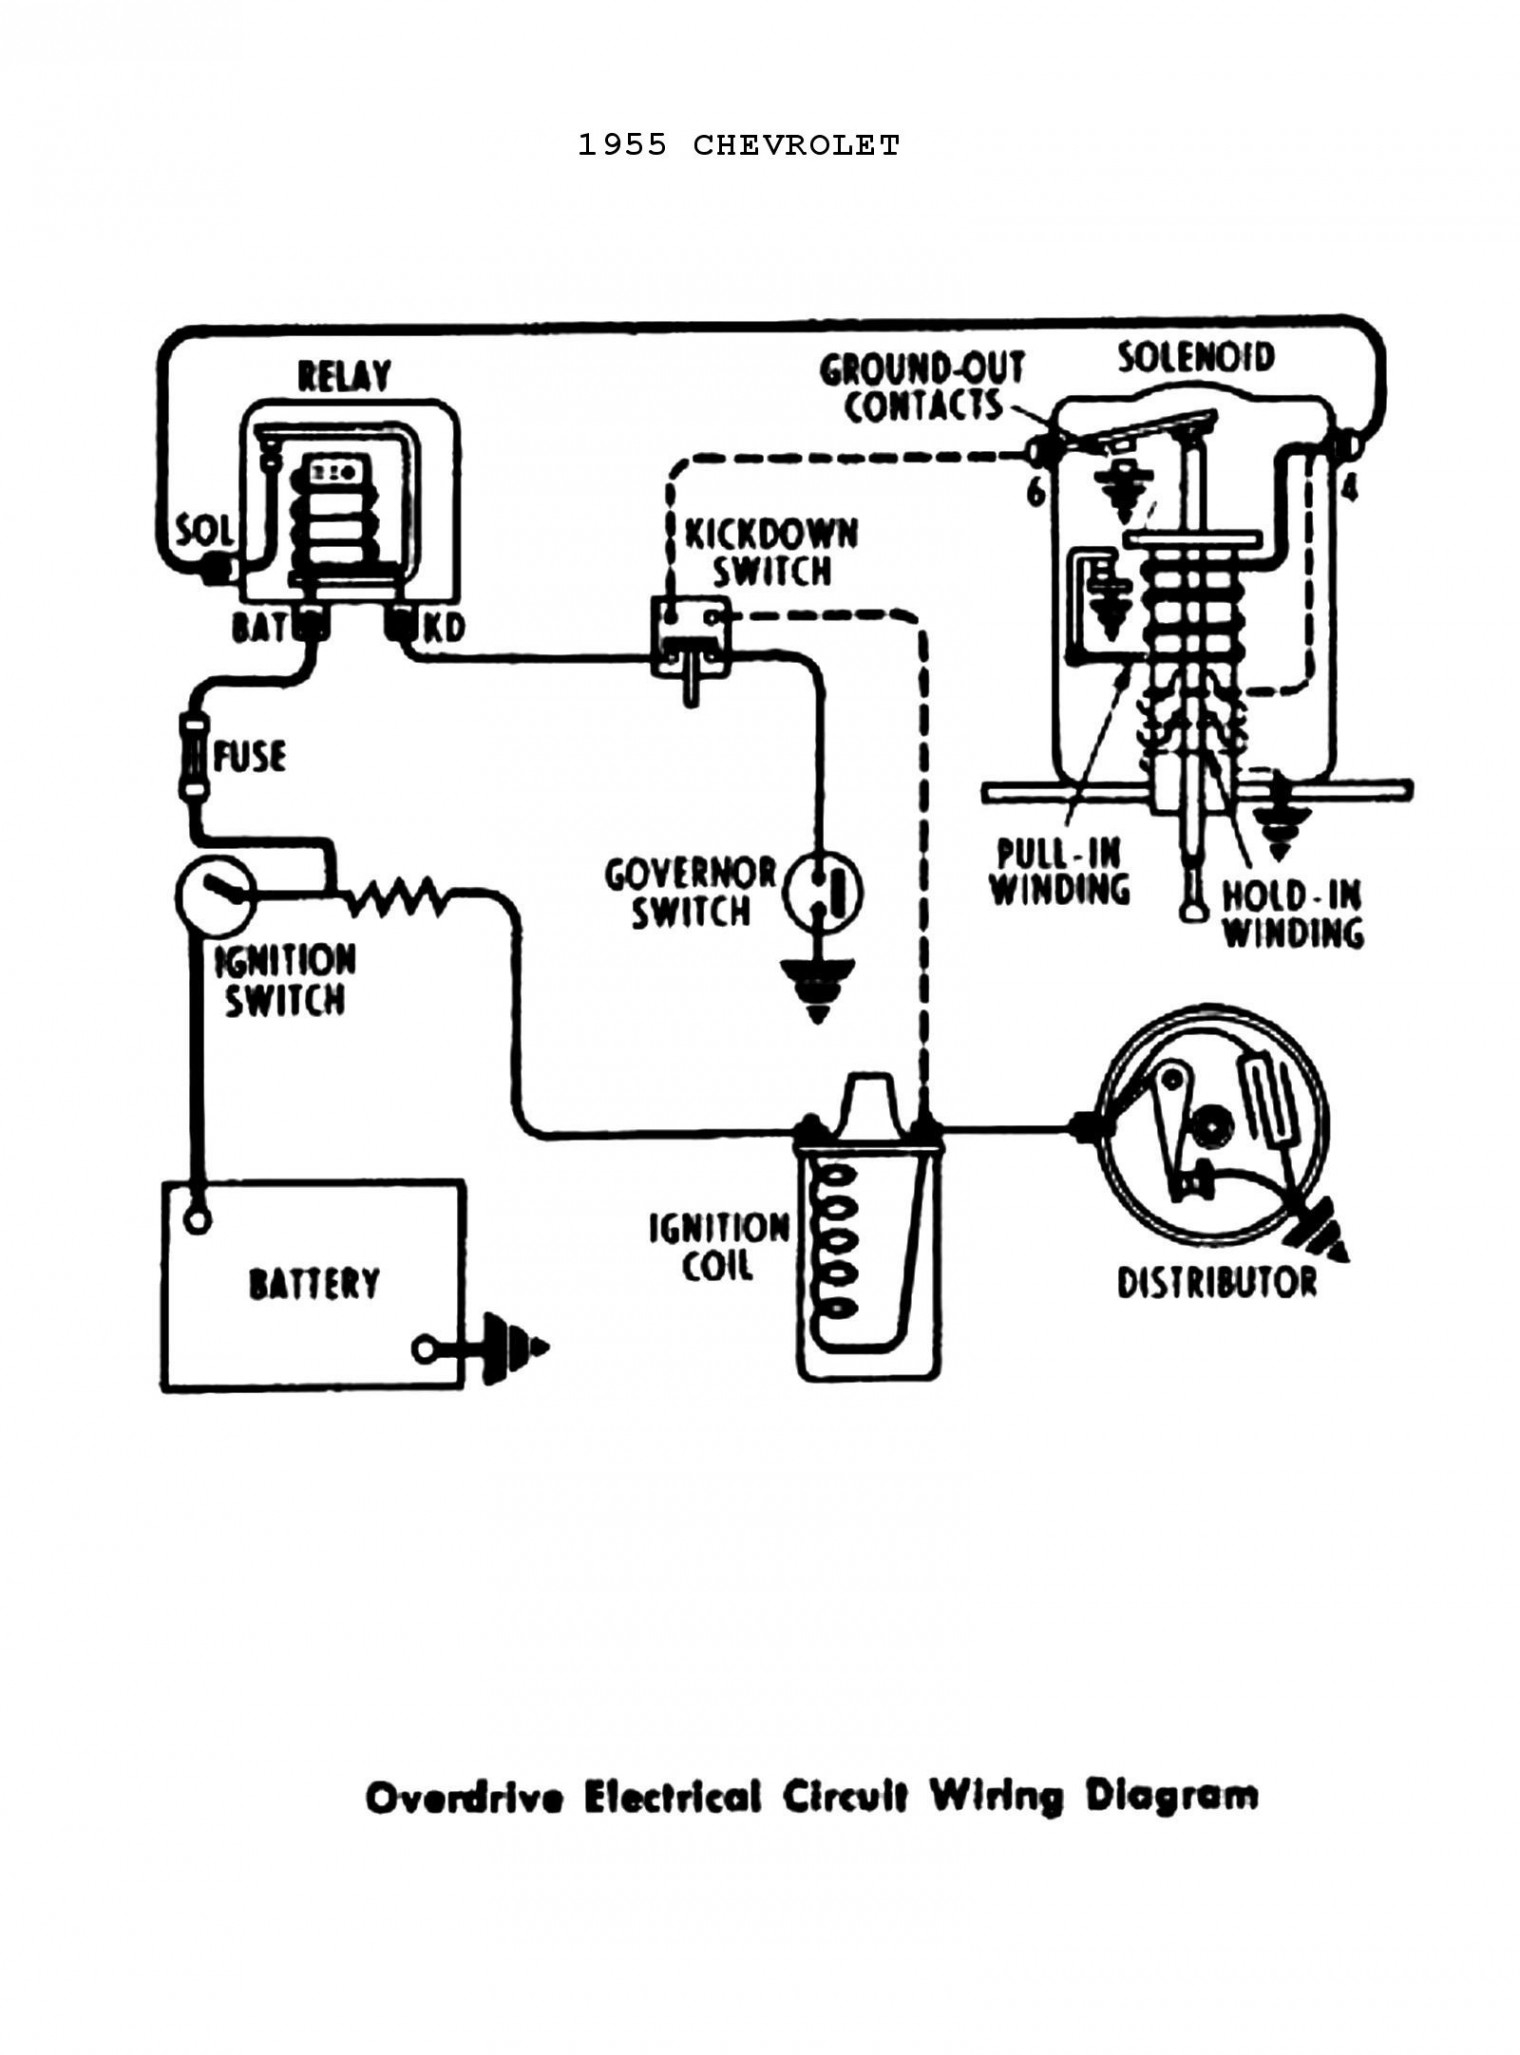 Collection Of Ford Tractor Ignition Switch Wiring Diagram Download